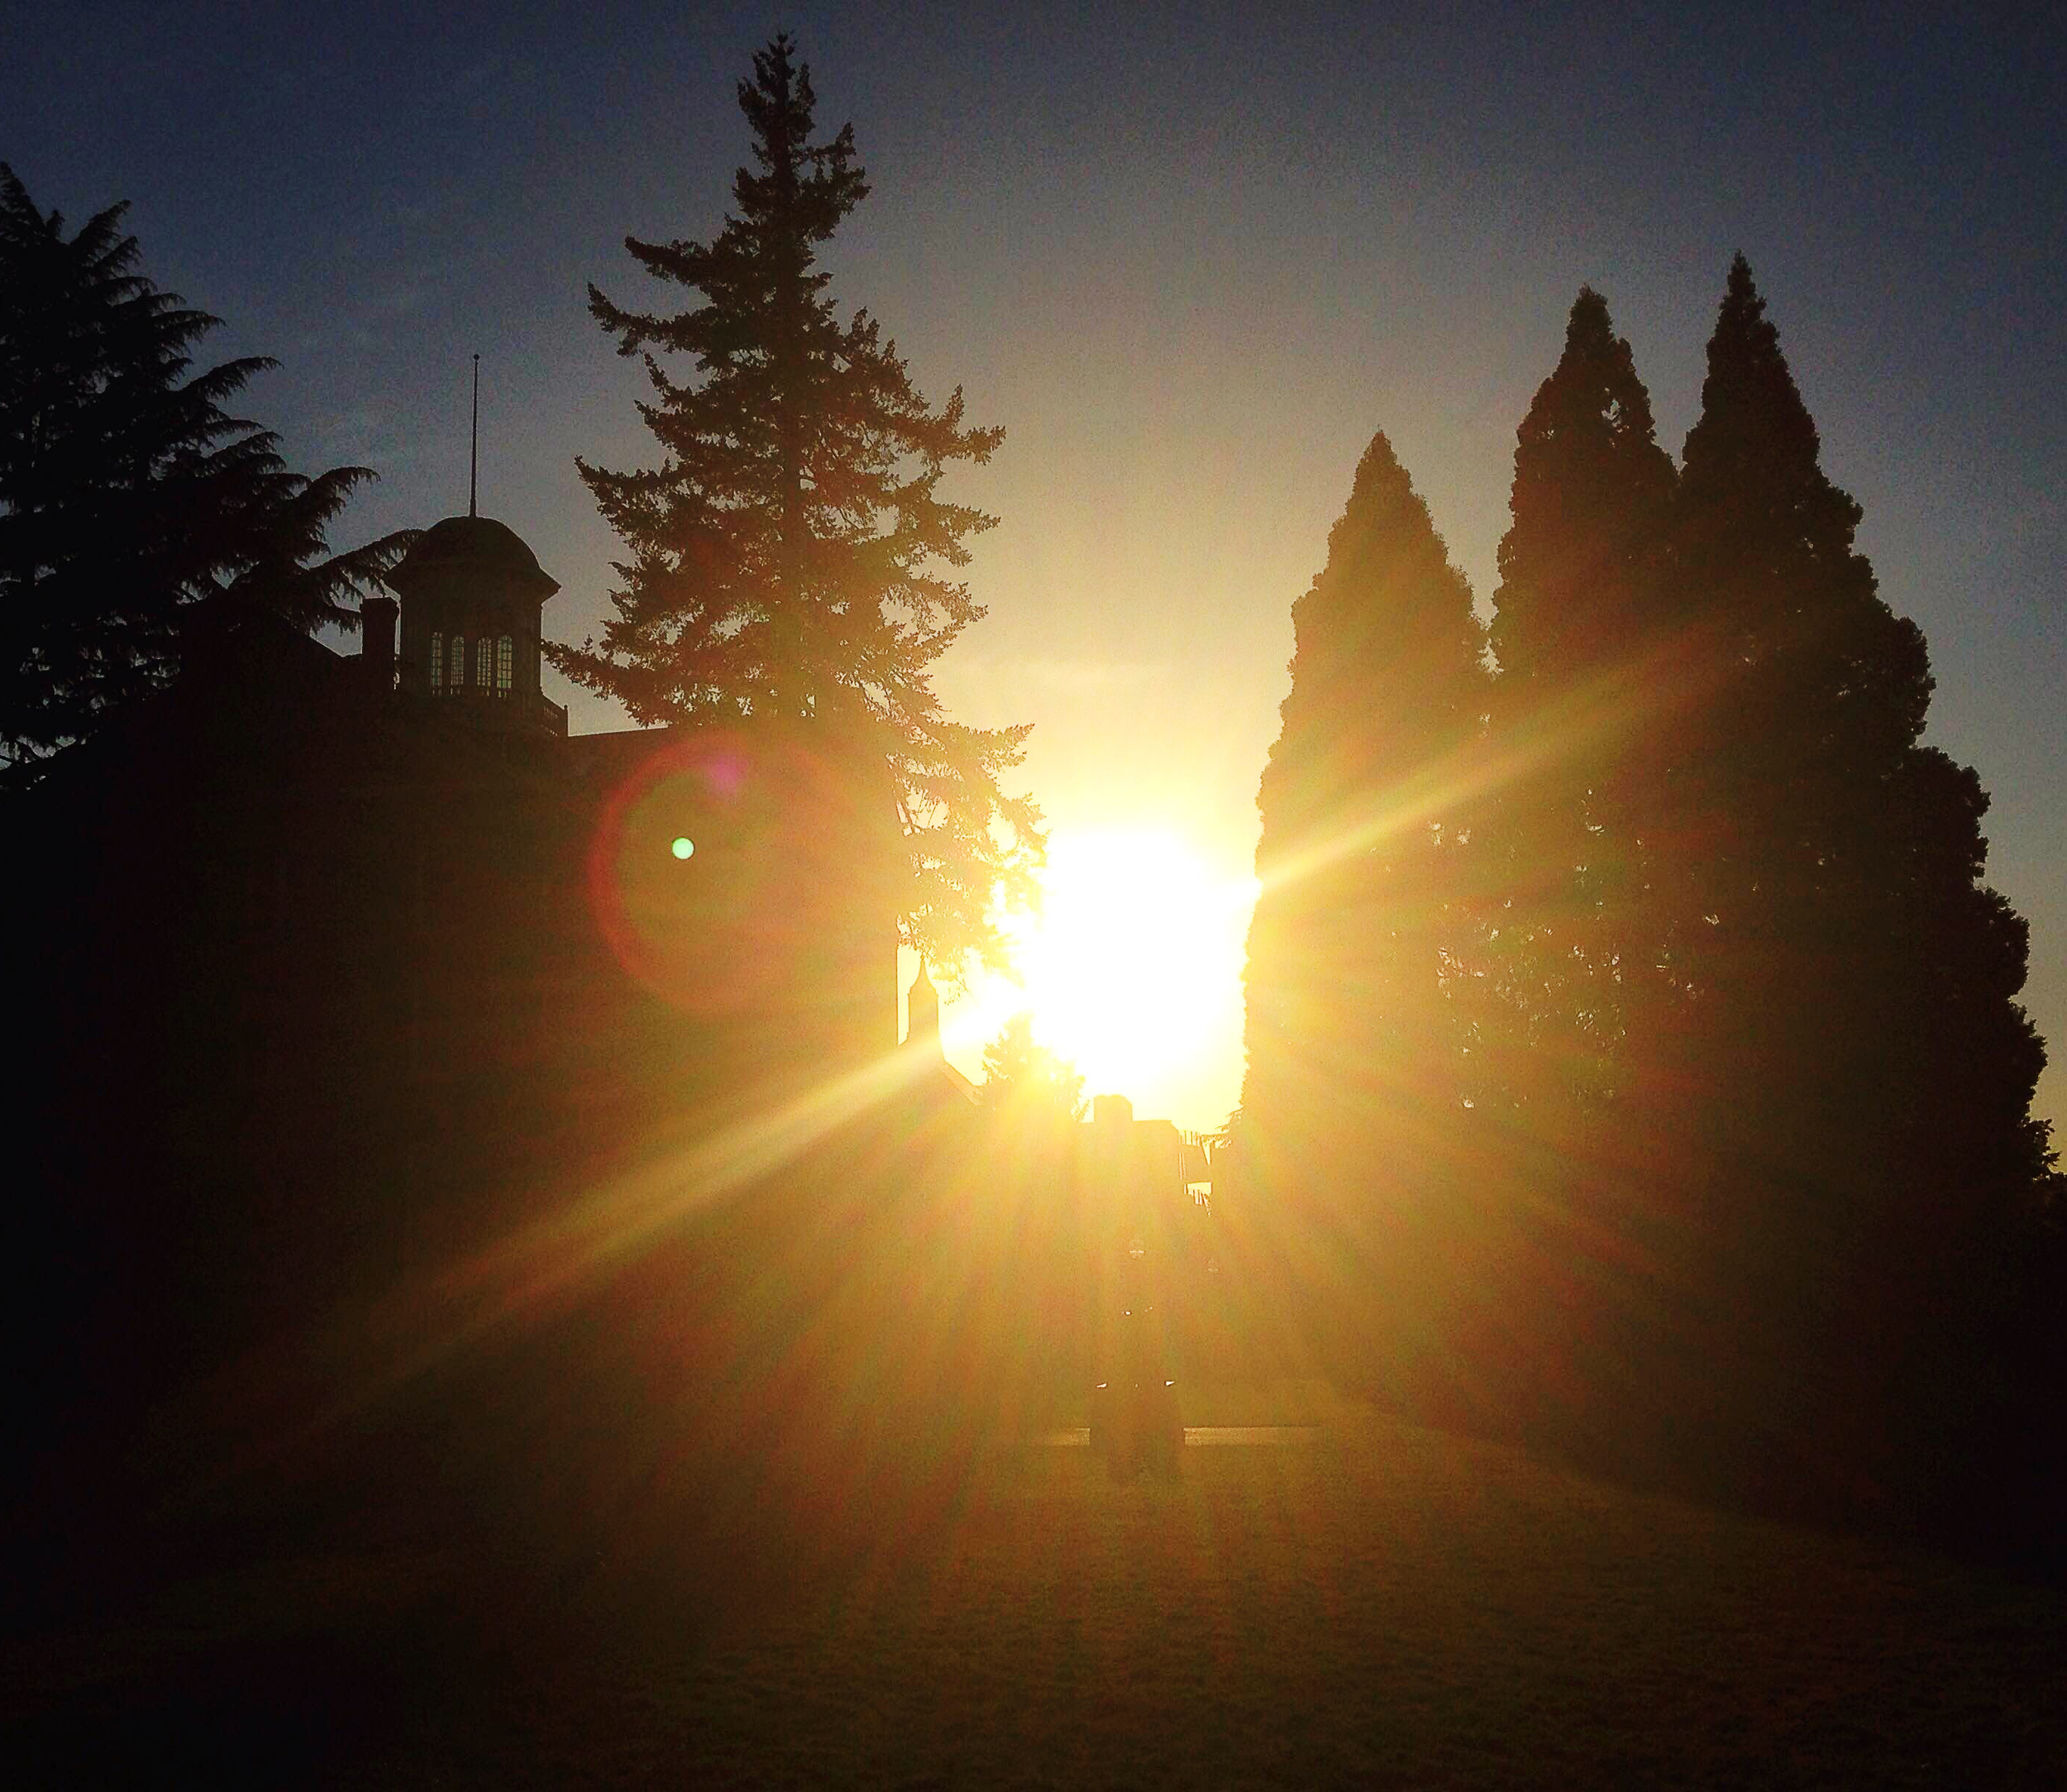 Willamette's Waller Hall and the Star Trees are silhouetted in against May's setting sun.